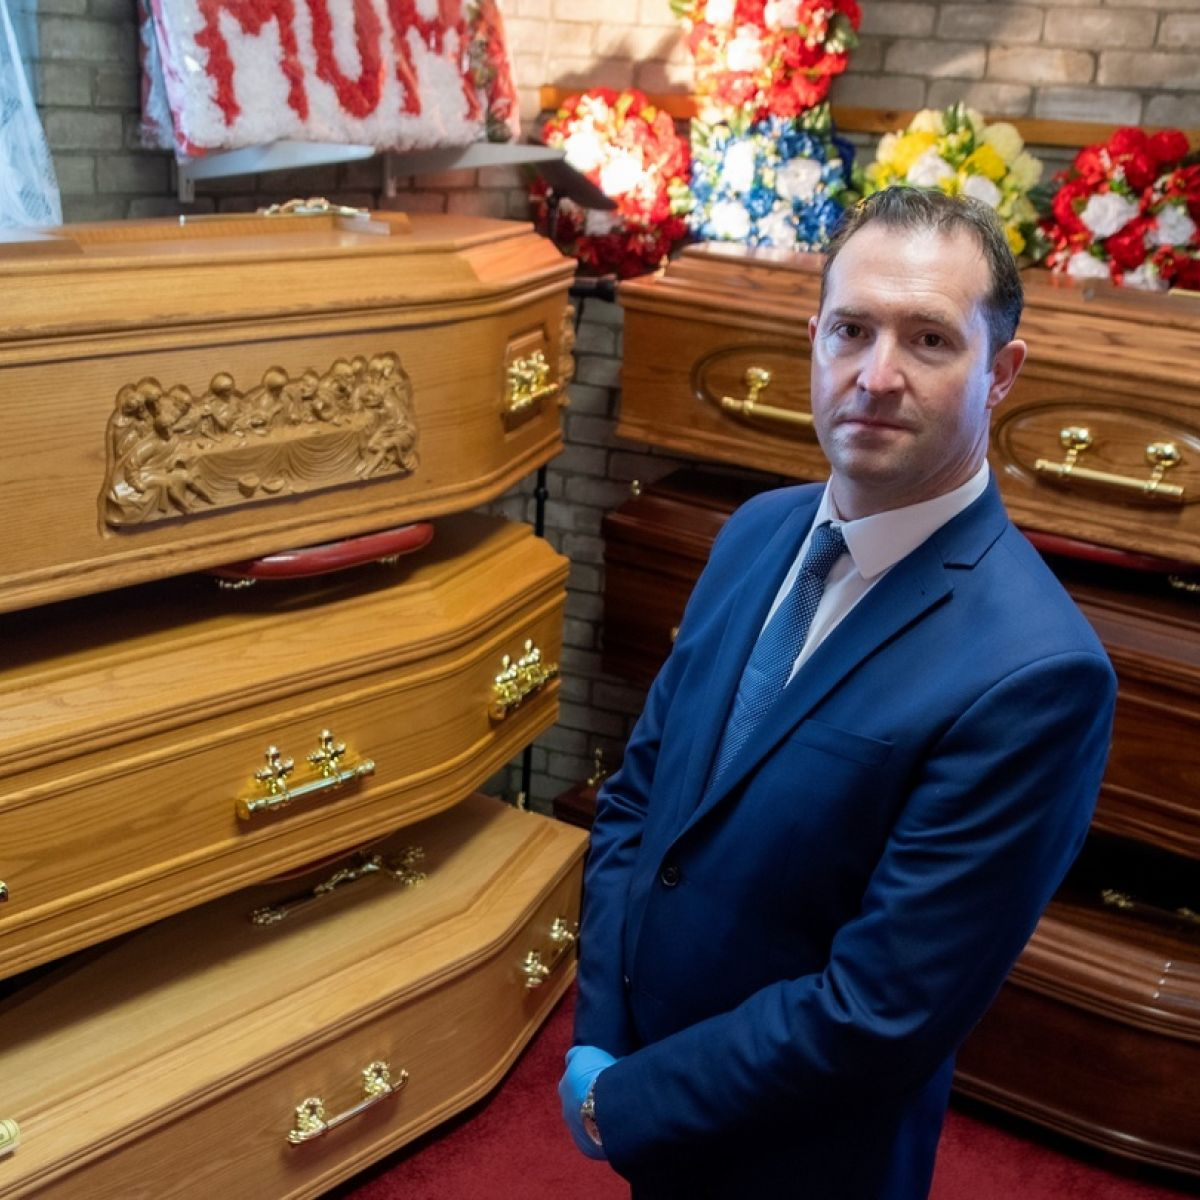 Funeral Directors Prepare For Easing Of Covid 19 Restrictions